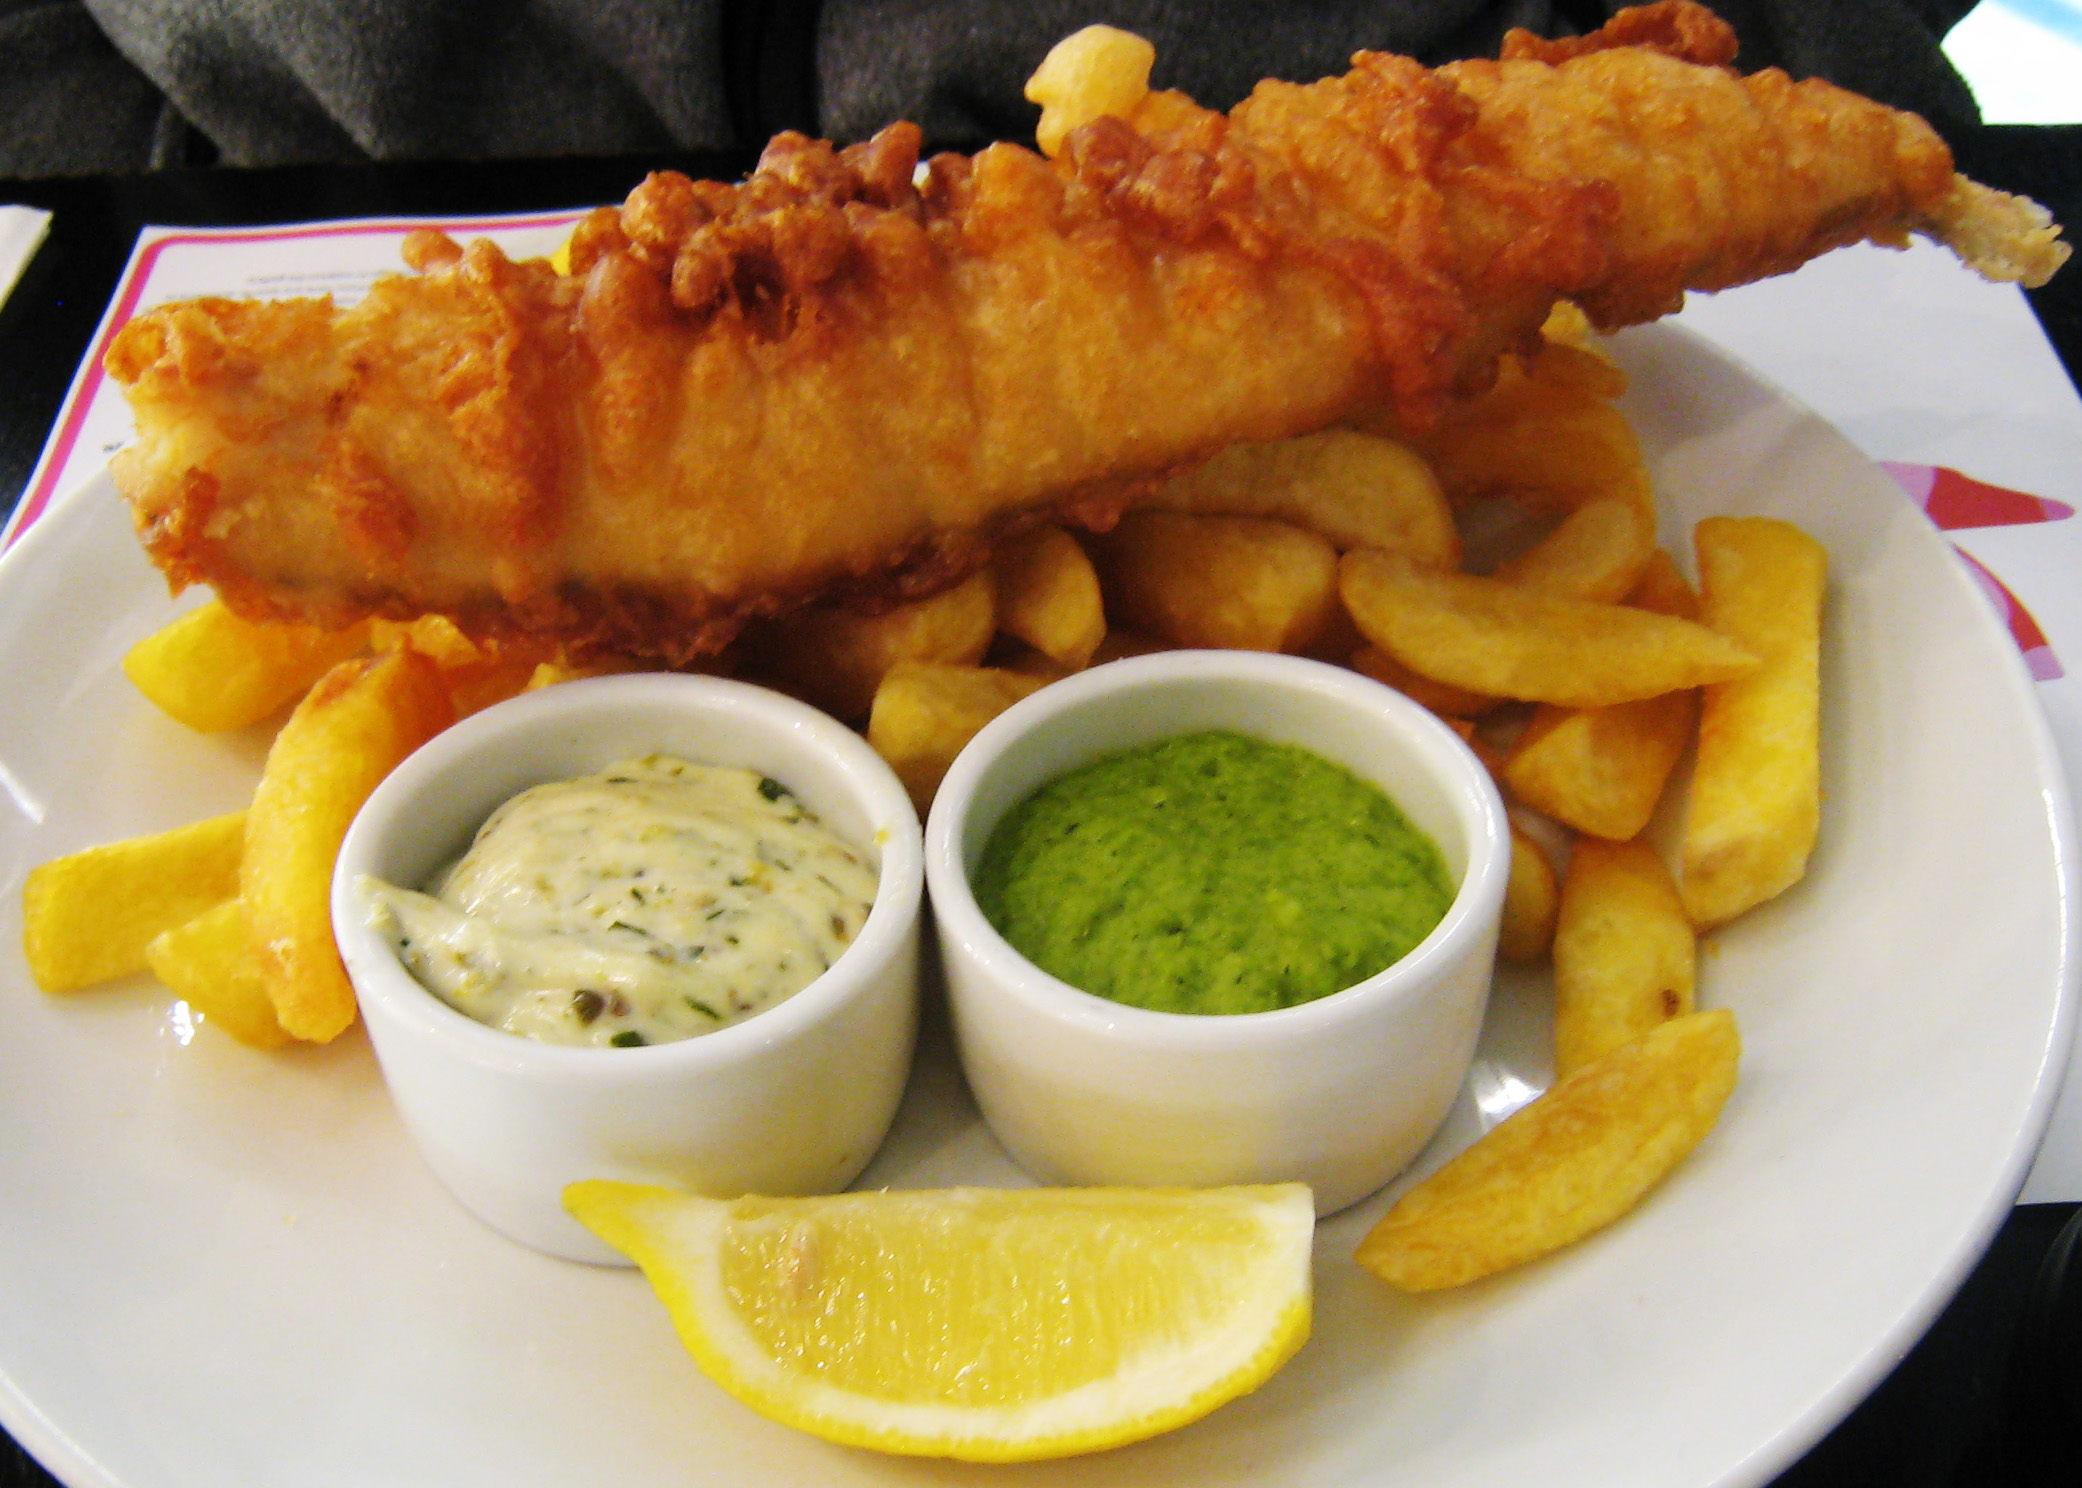 File:Fish, chips and mushy peas.jpg - Wikipedia, the free encyclopedia